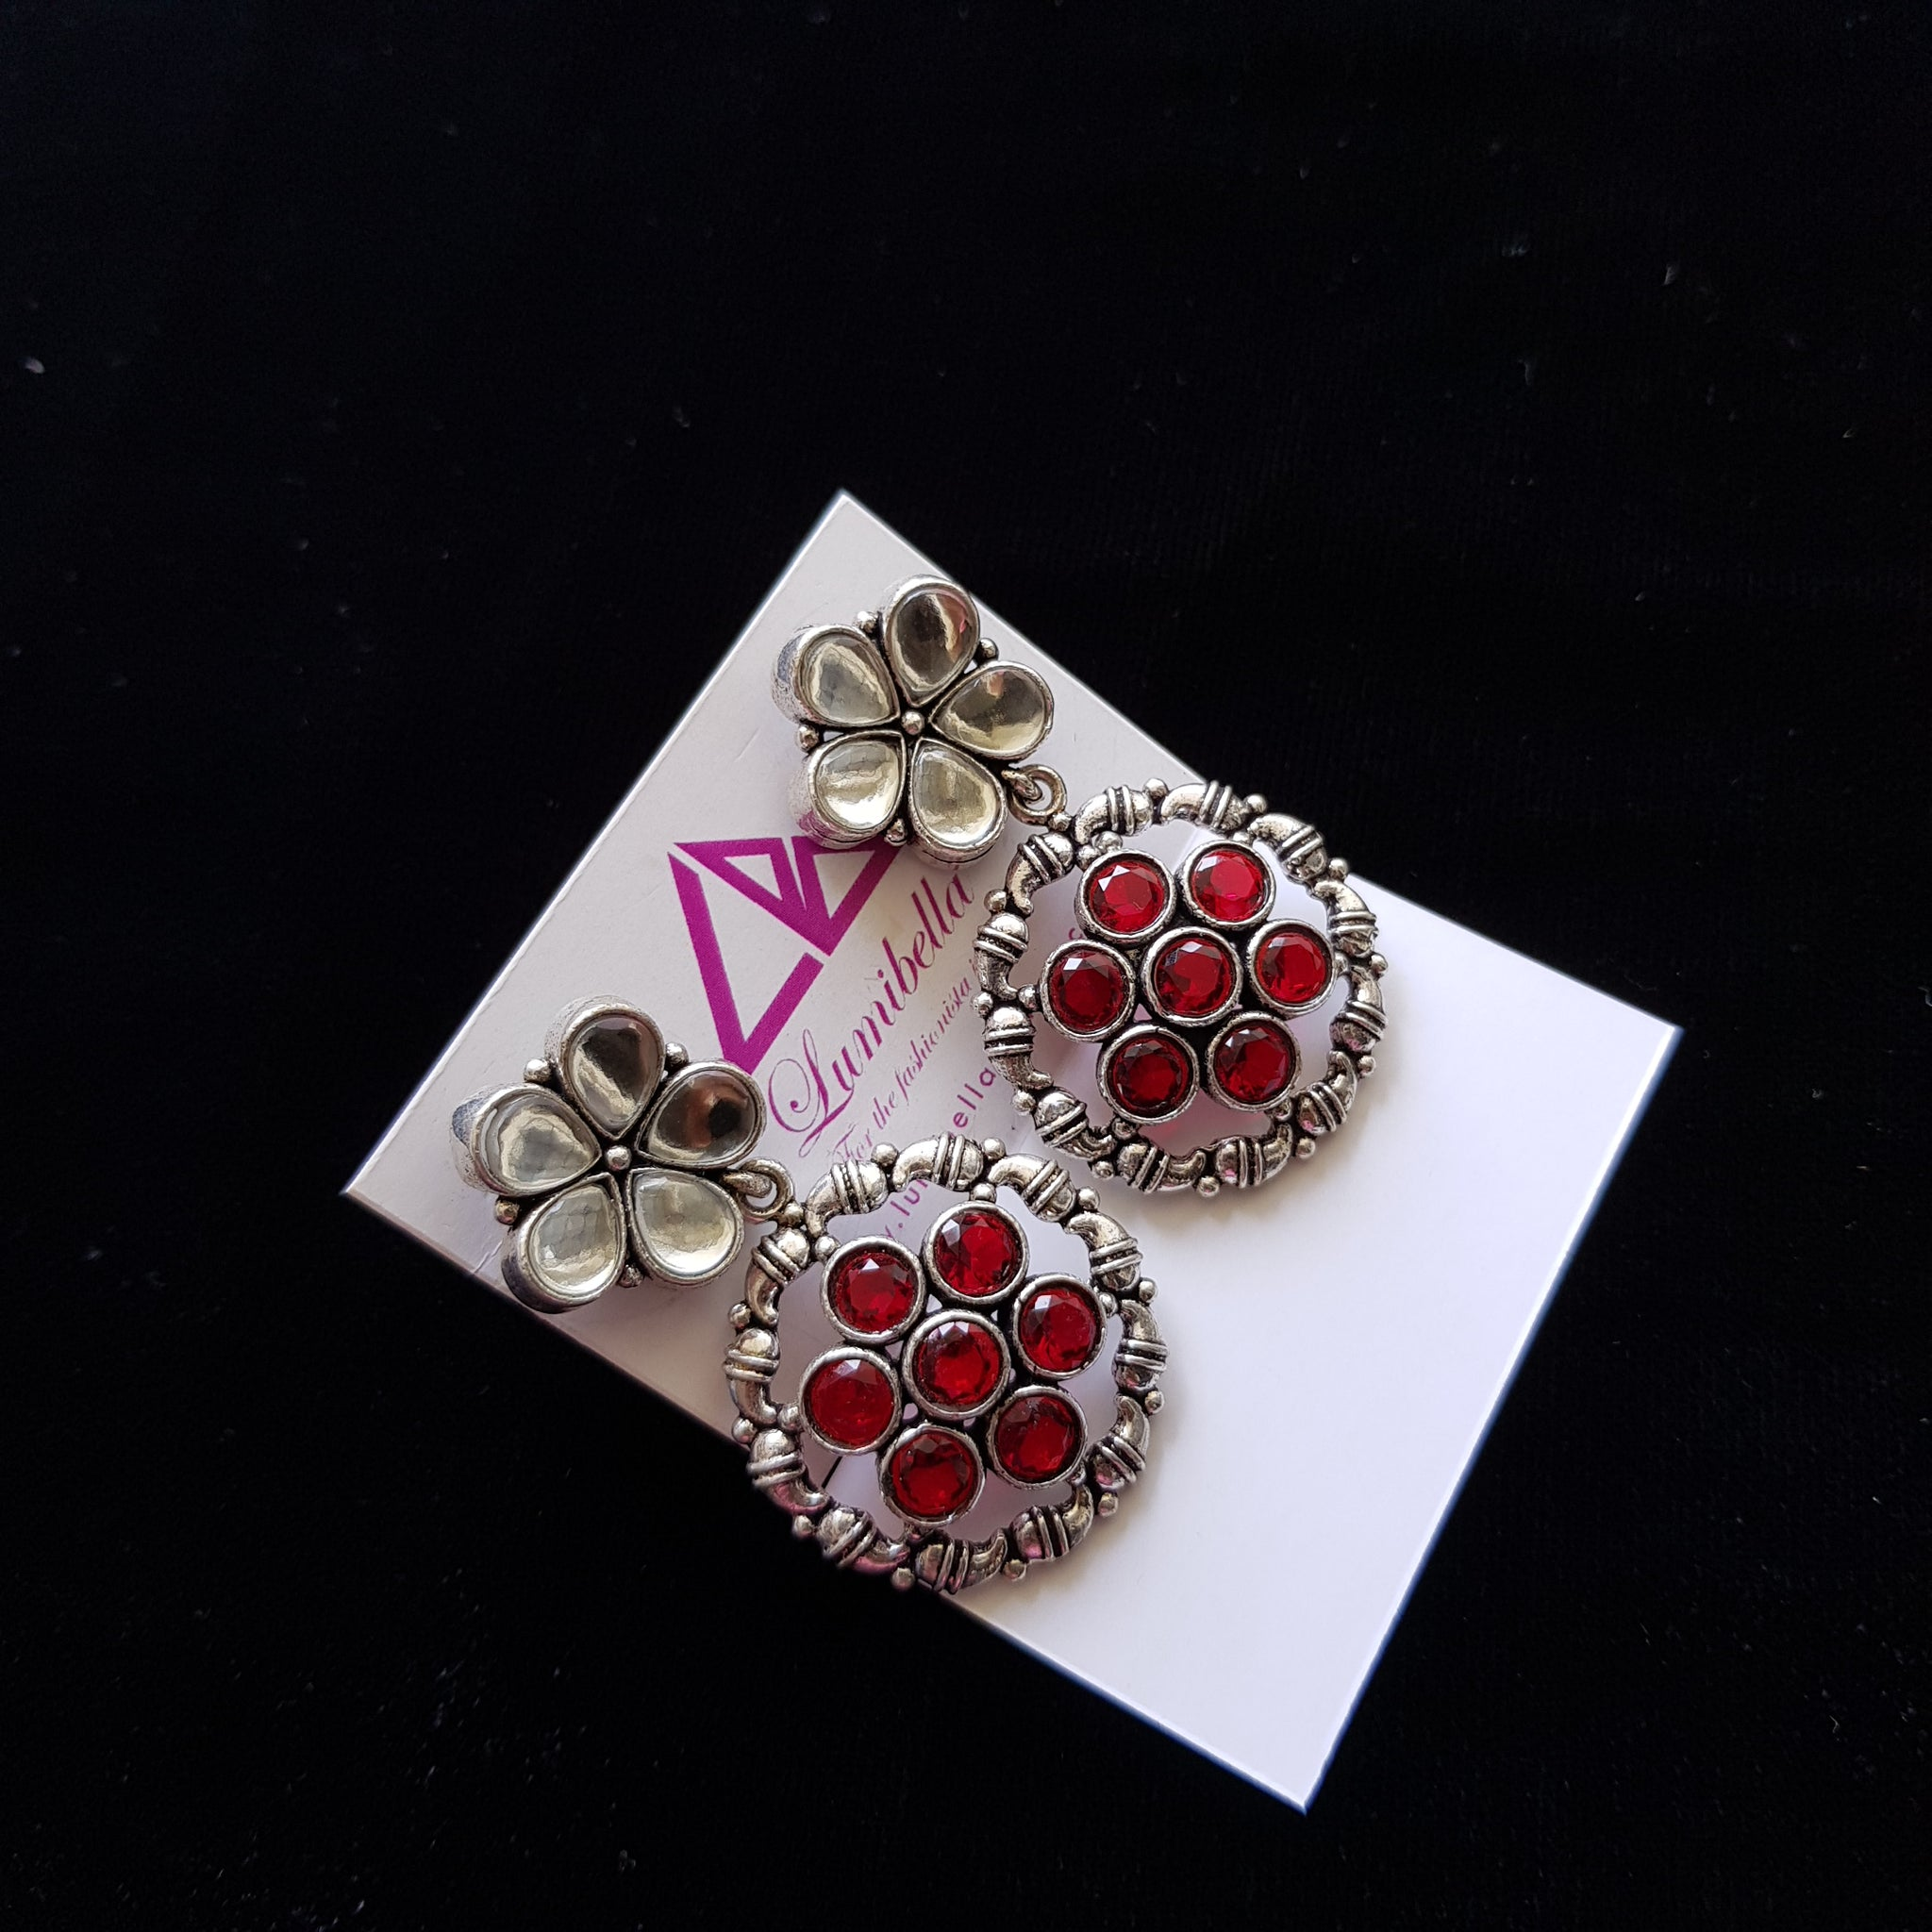 German silver stud earrings with semi precious stone embellishment